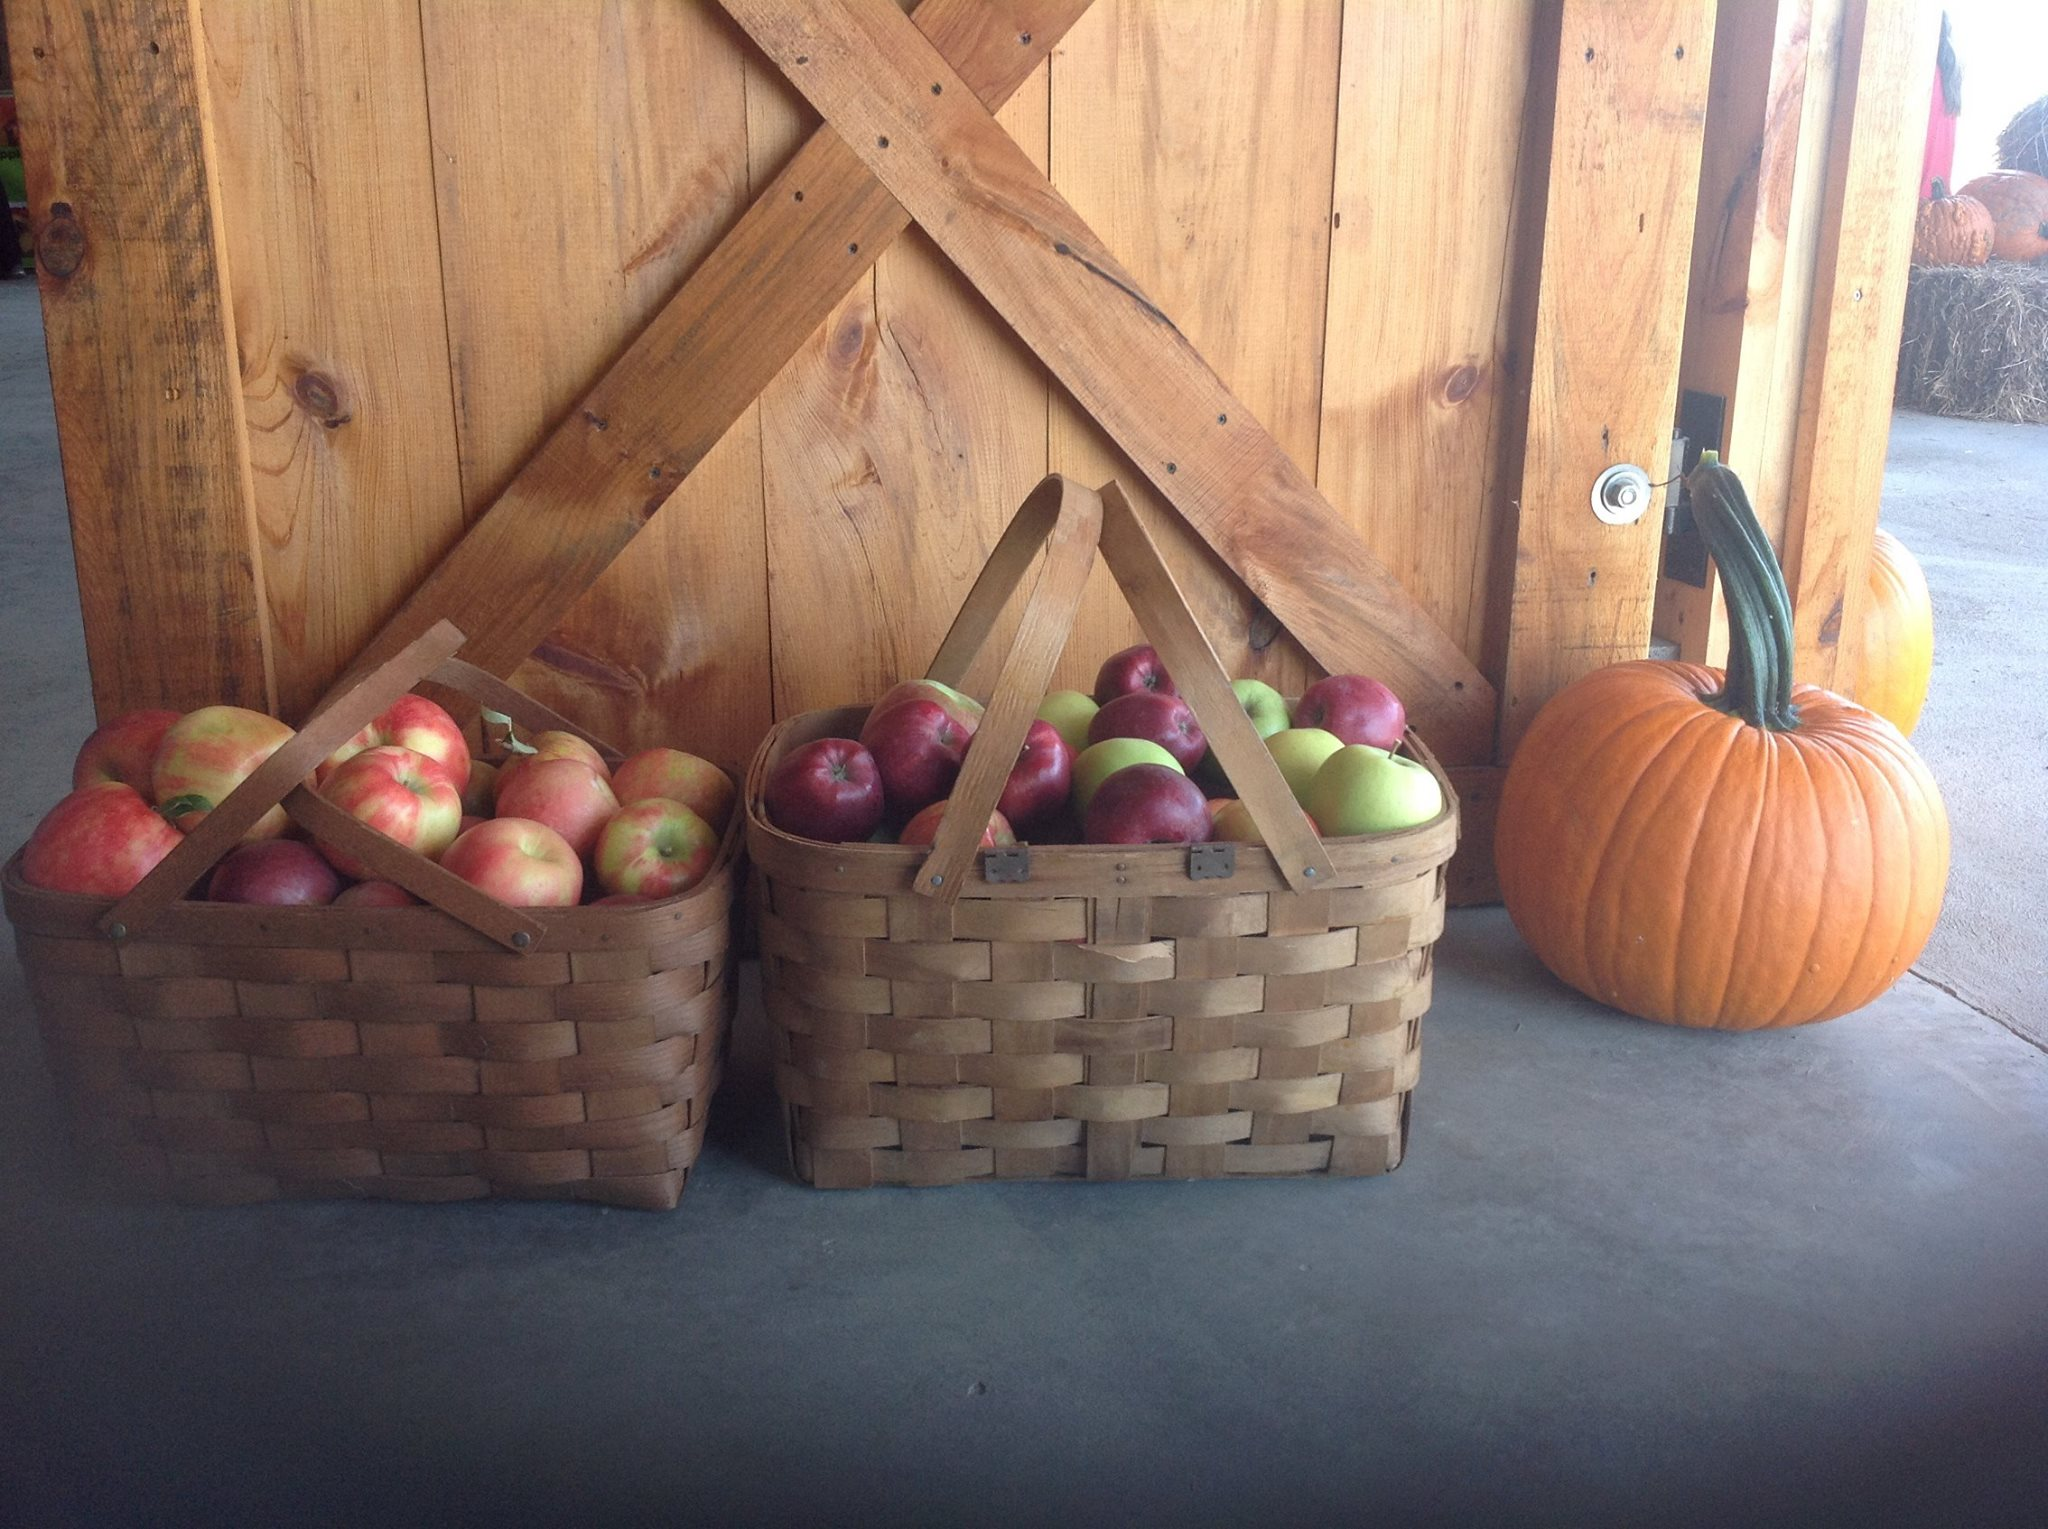 Baskets of Red Delicious, Golden Delicious, Honey Crisp, Macoun, McIntosh Apples and a big pumpkin at Fix Bros. Fruit Farm, Hudson, New York